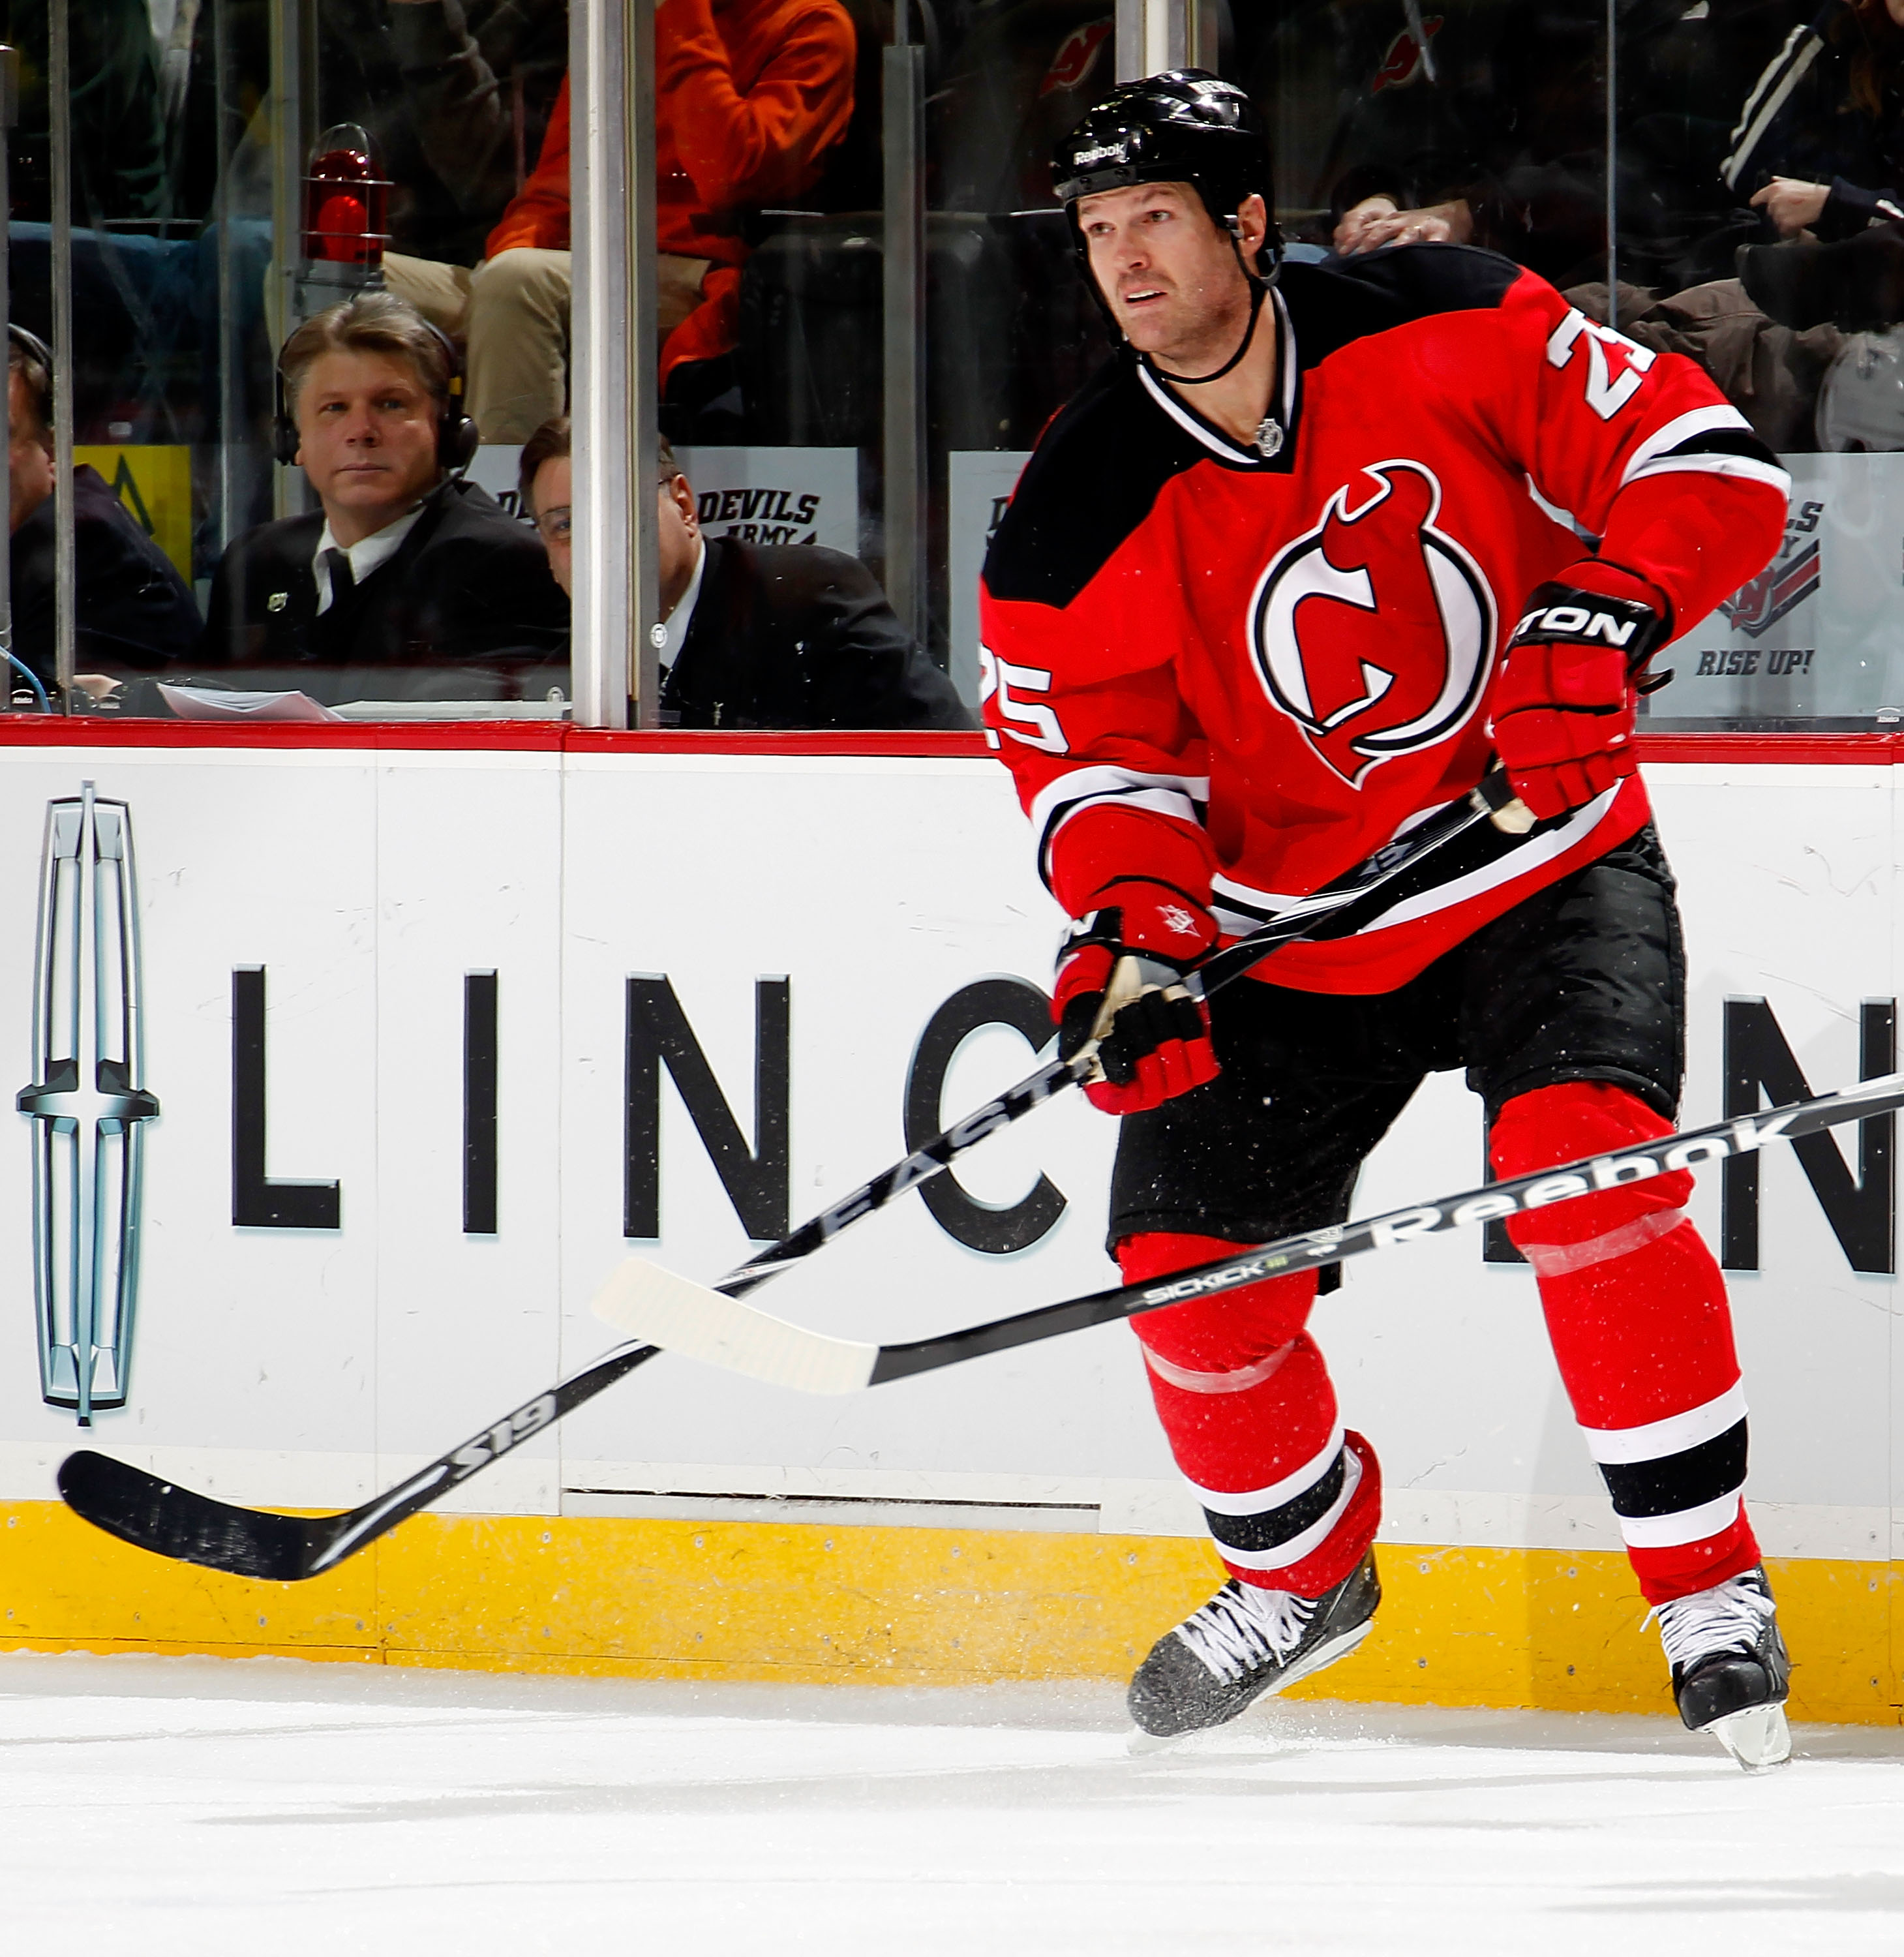 NEWARK, NJ - JANUARY 09:  Jason Arnott #25 of the New Jersey Devils skates during an NHL hockey game against the Tampa Bay Lightning at the Prudential Center on January 9, 2011 in Newark, New Jersey.  (Photo by Paul Bereswill/Getty Images)